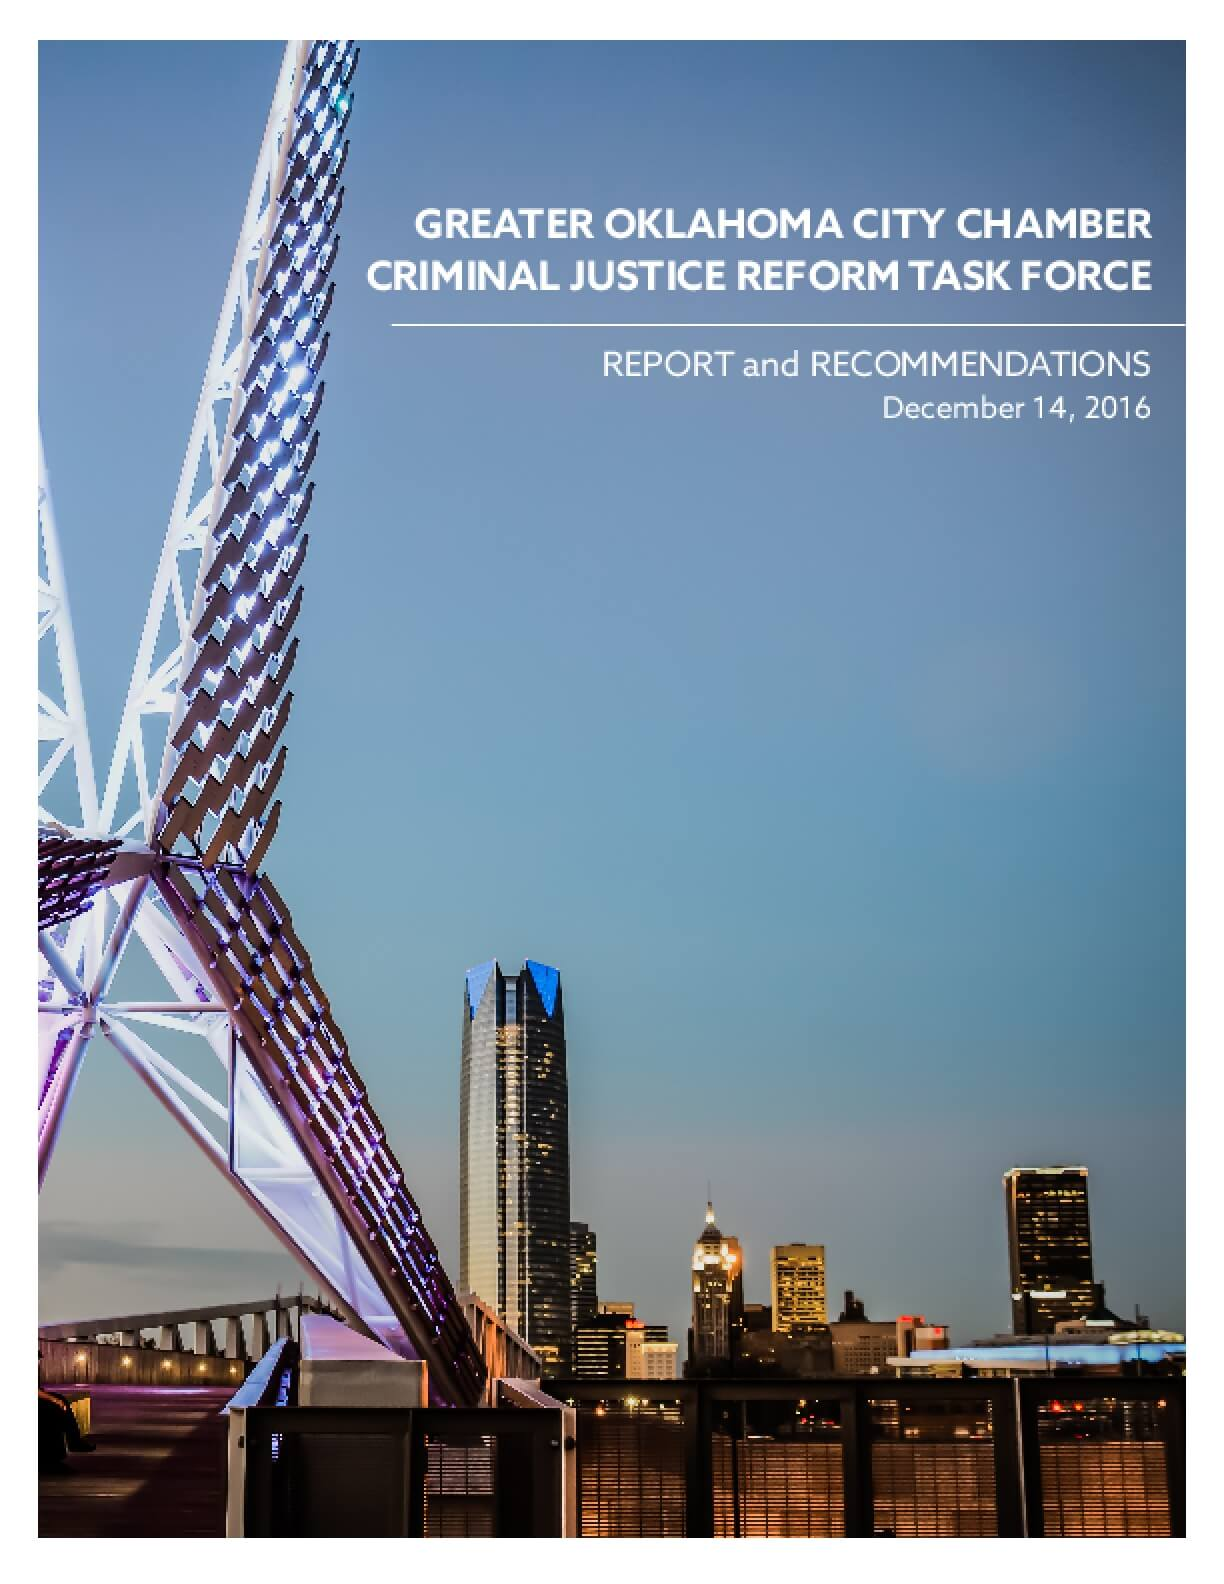 Greater Oklahoma City Chamber Criminal Justice Reform Task Force: Report and Recommendations